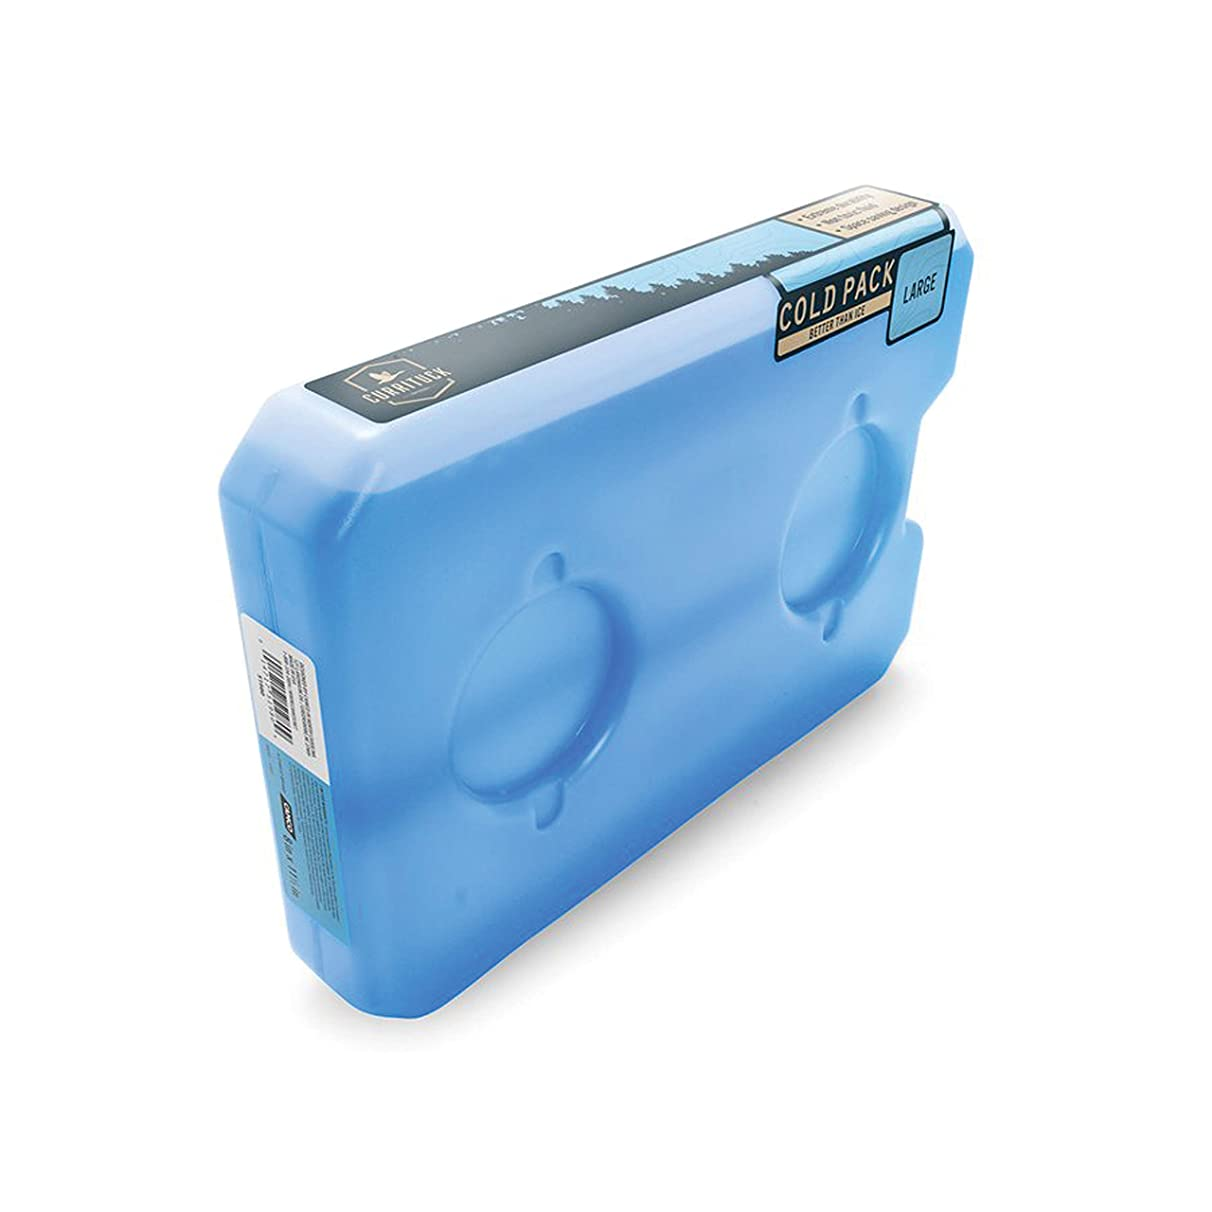 Camco Large Currituck Reusable Freezer Cold Pack for Coolers and Lunch Boxes These Cool Ice Packs are Perfect for Camping, Hiking, the Beach and Travel (51980)